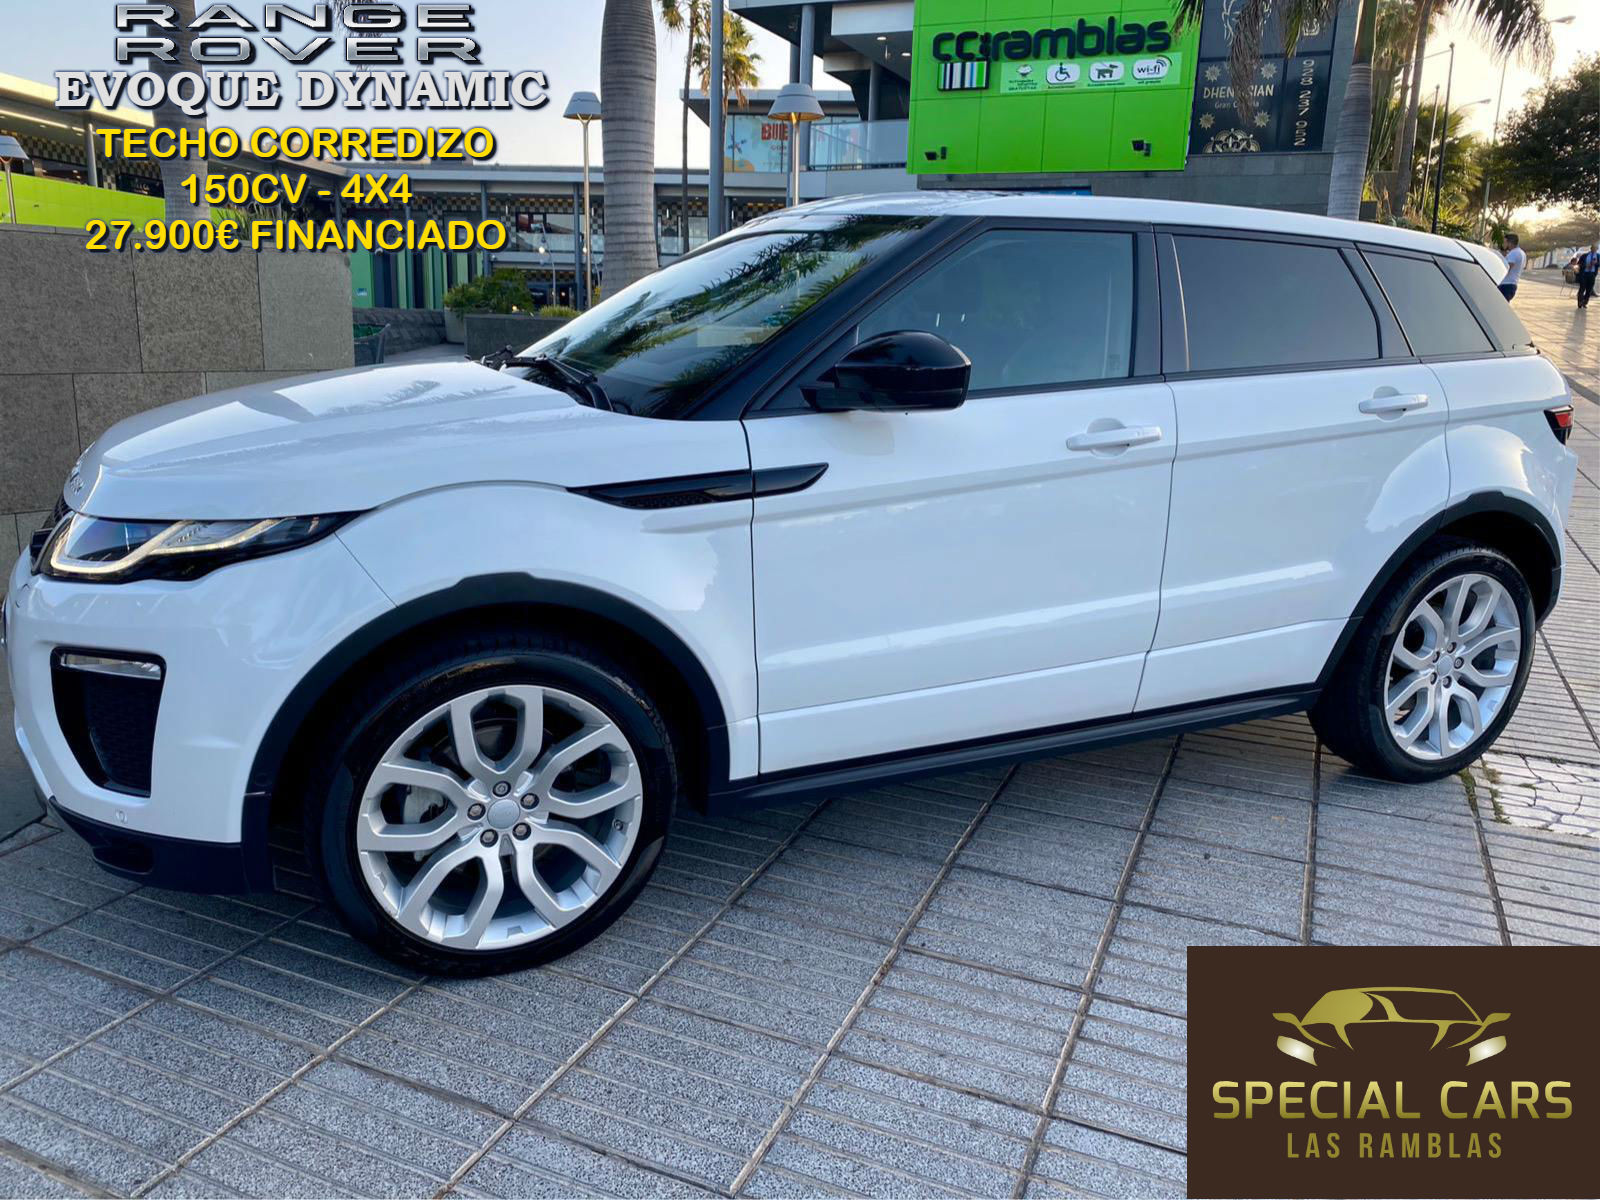 RANGE ROVER EVOQUE DYNAMIC 2.0 TD4 2016 FEB20 (1)